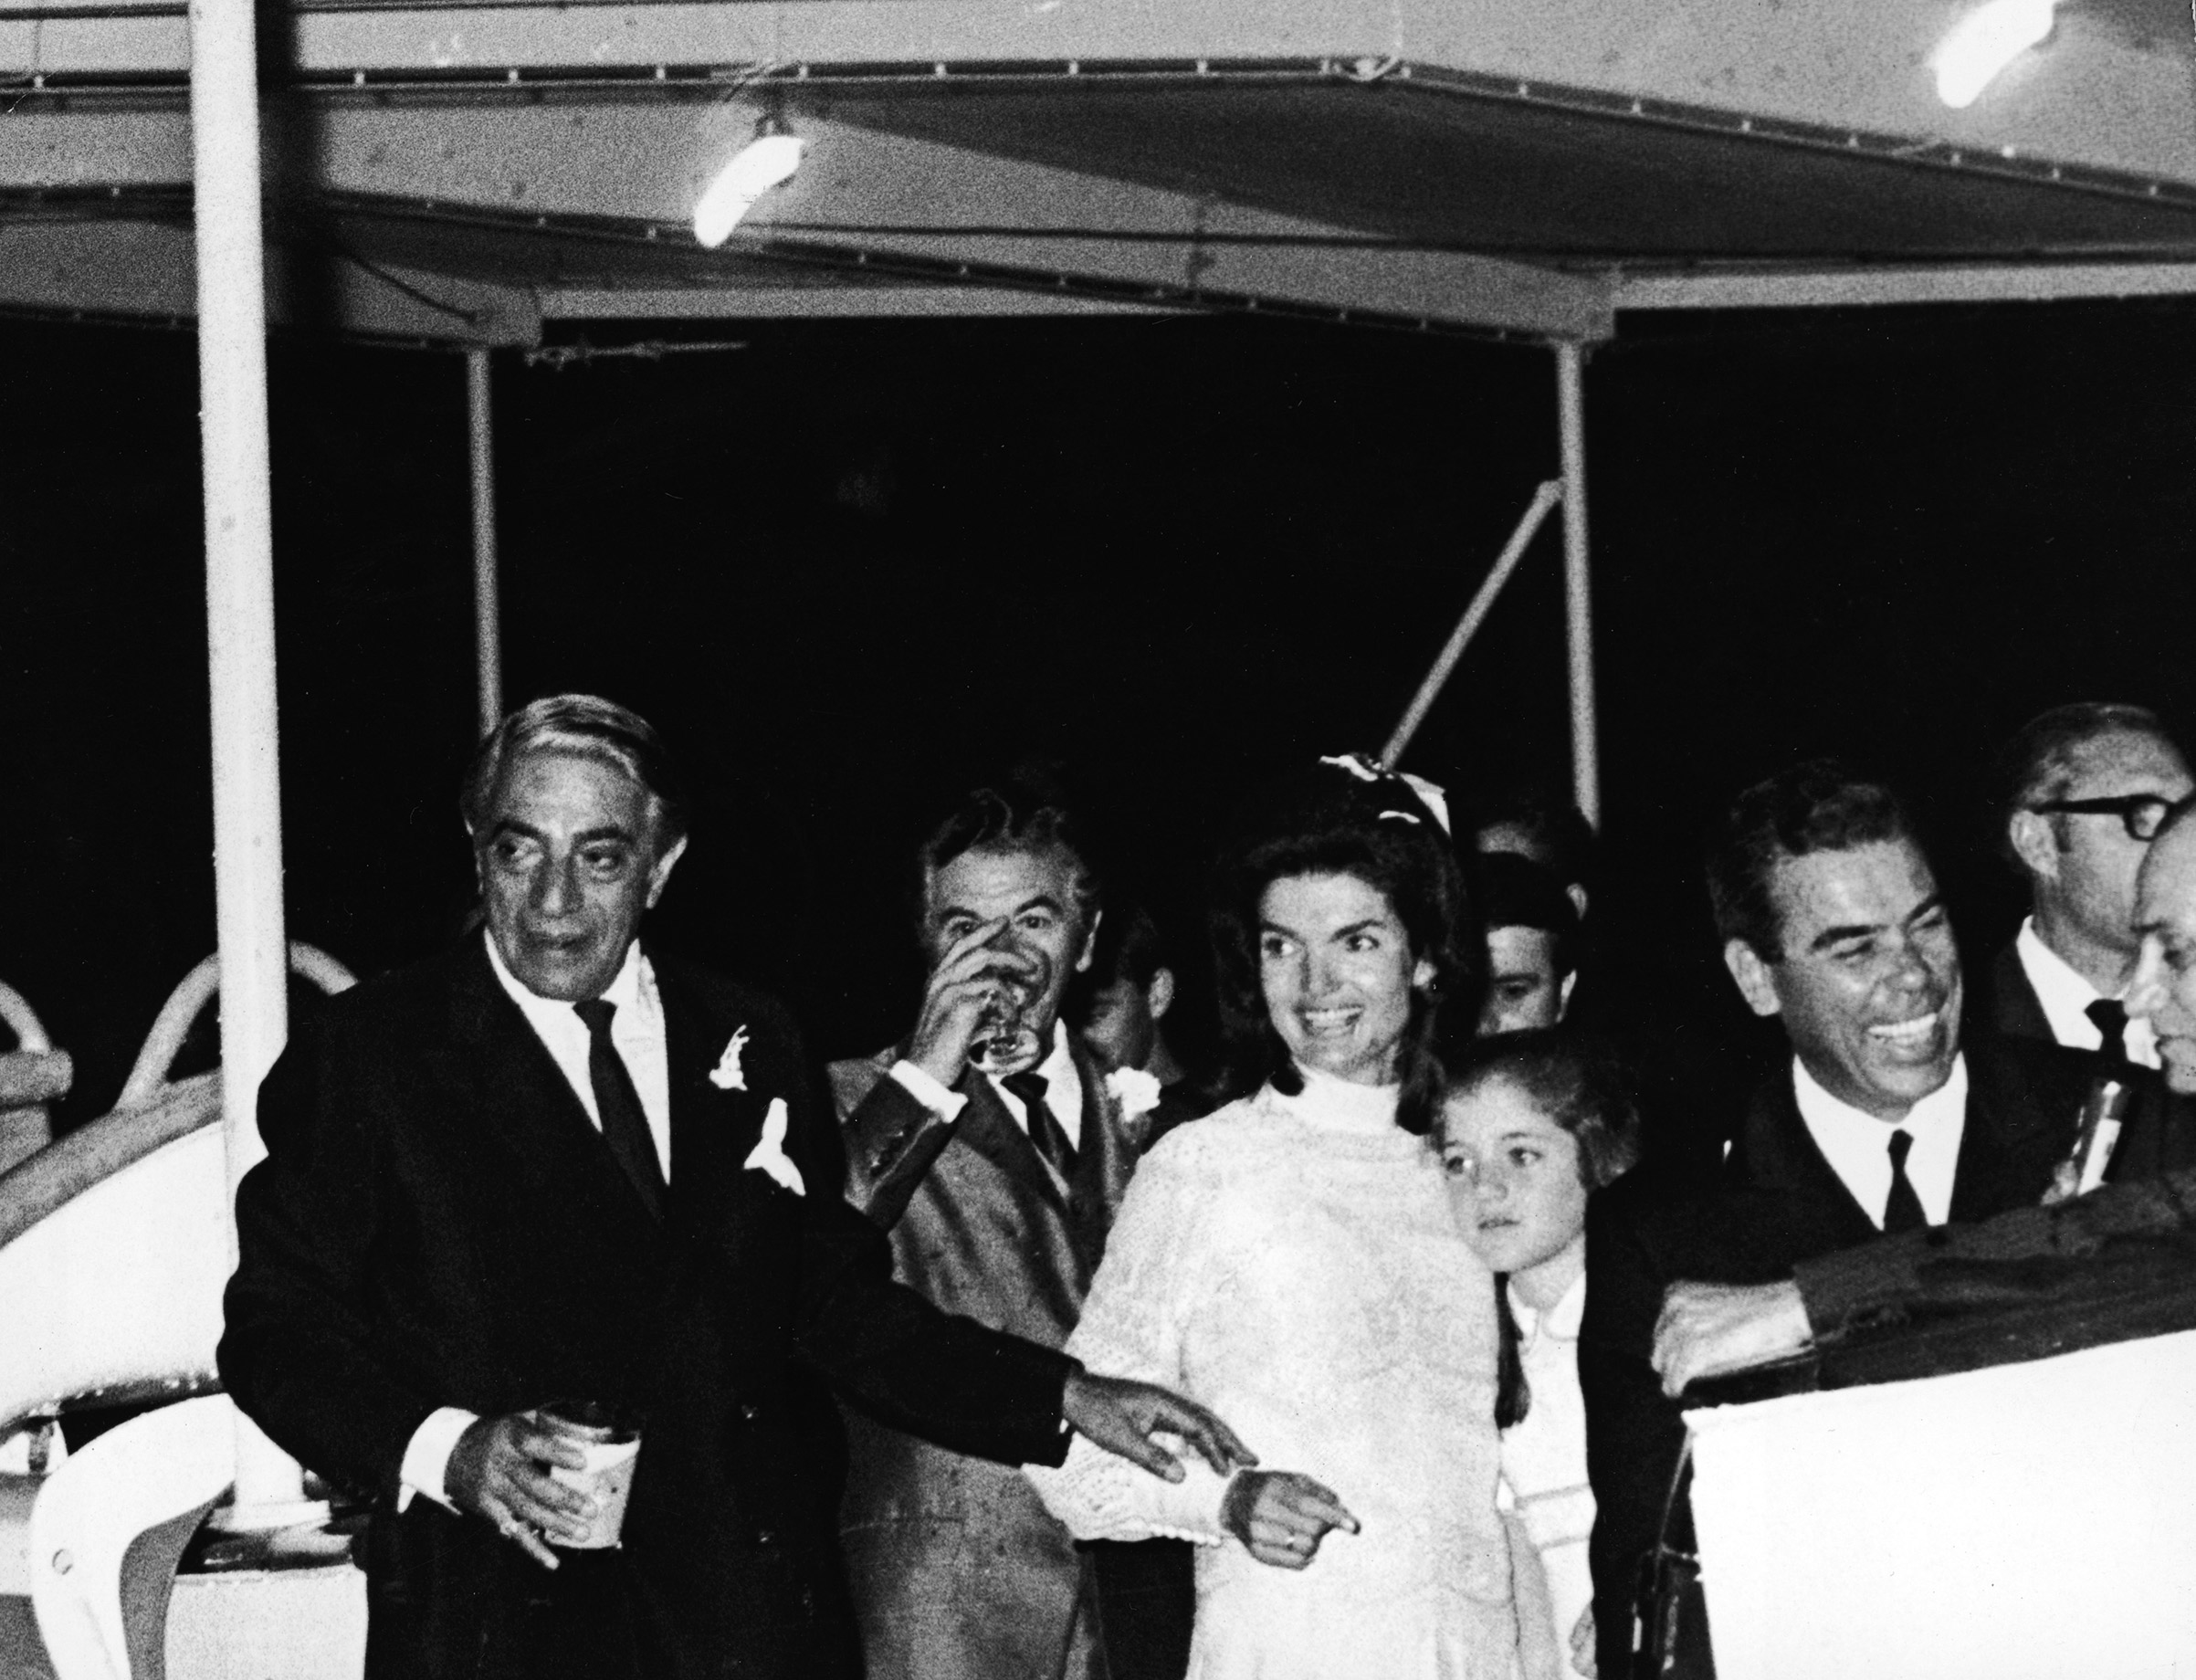 Jacqueline Kennedy Onassis, embracing her daughter, Caroline Kennedy, and her new husband, Greek shipping magnate Aristotle Onassis at their wedding reception aboard the yacht, Christina, shortly after they tied the knot on the Island of Skorpios, Greece, on Oct. 21, 1968.